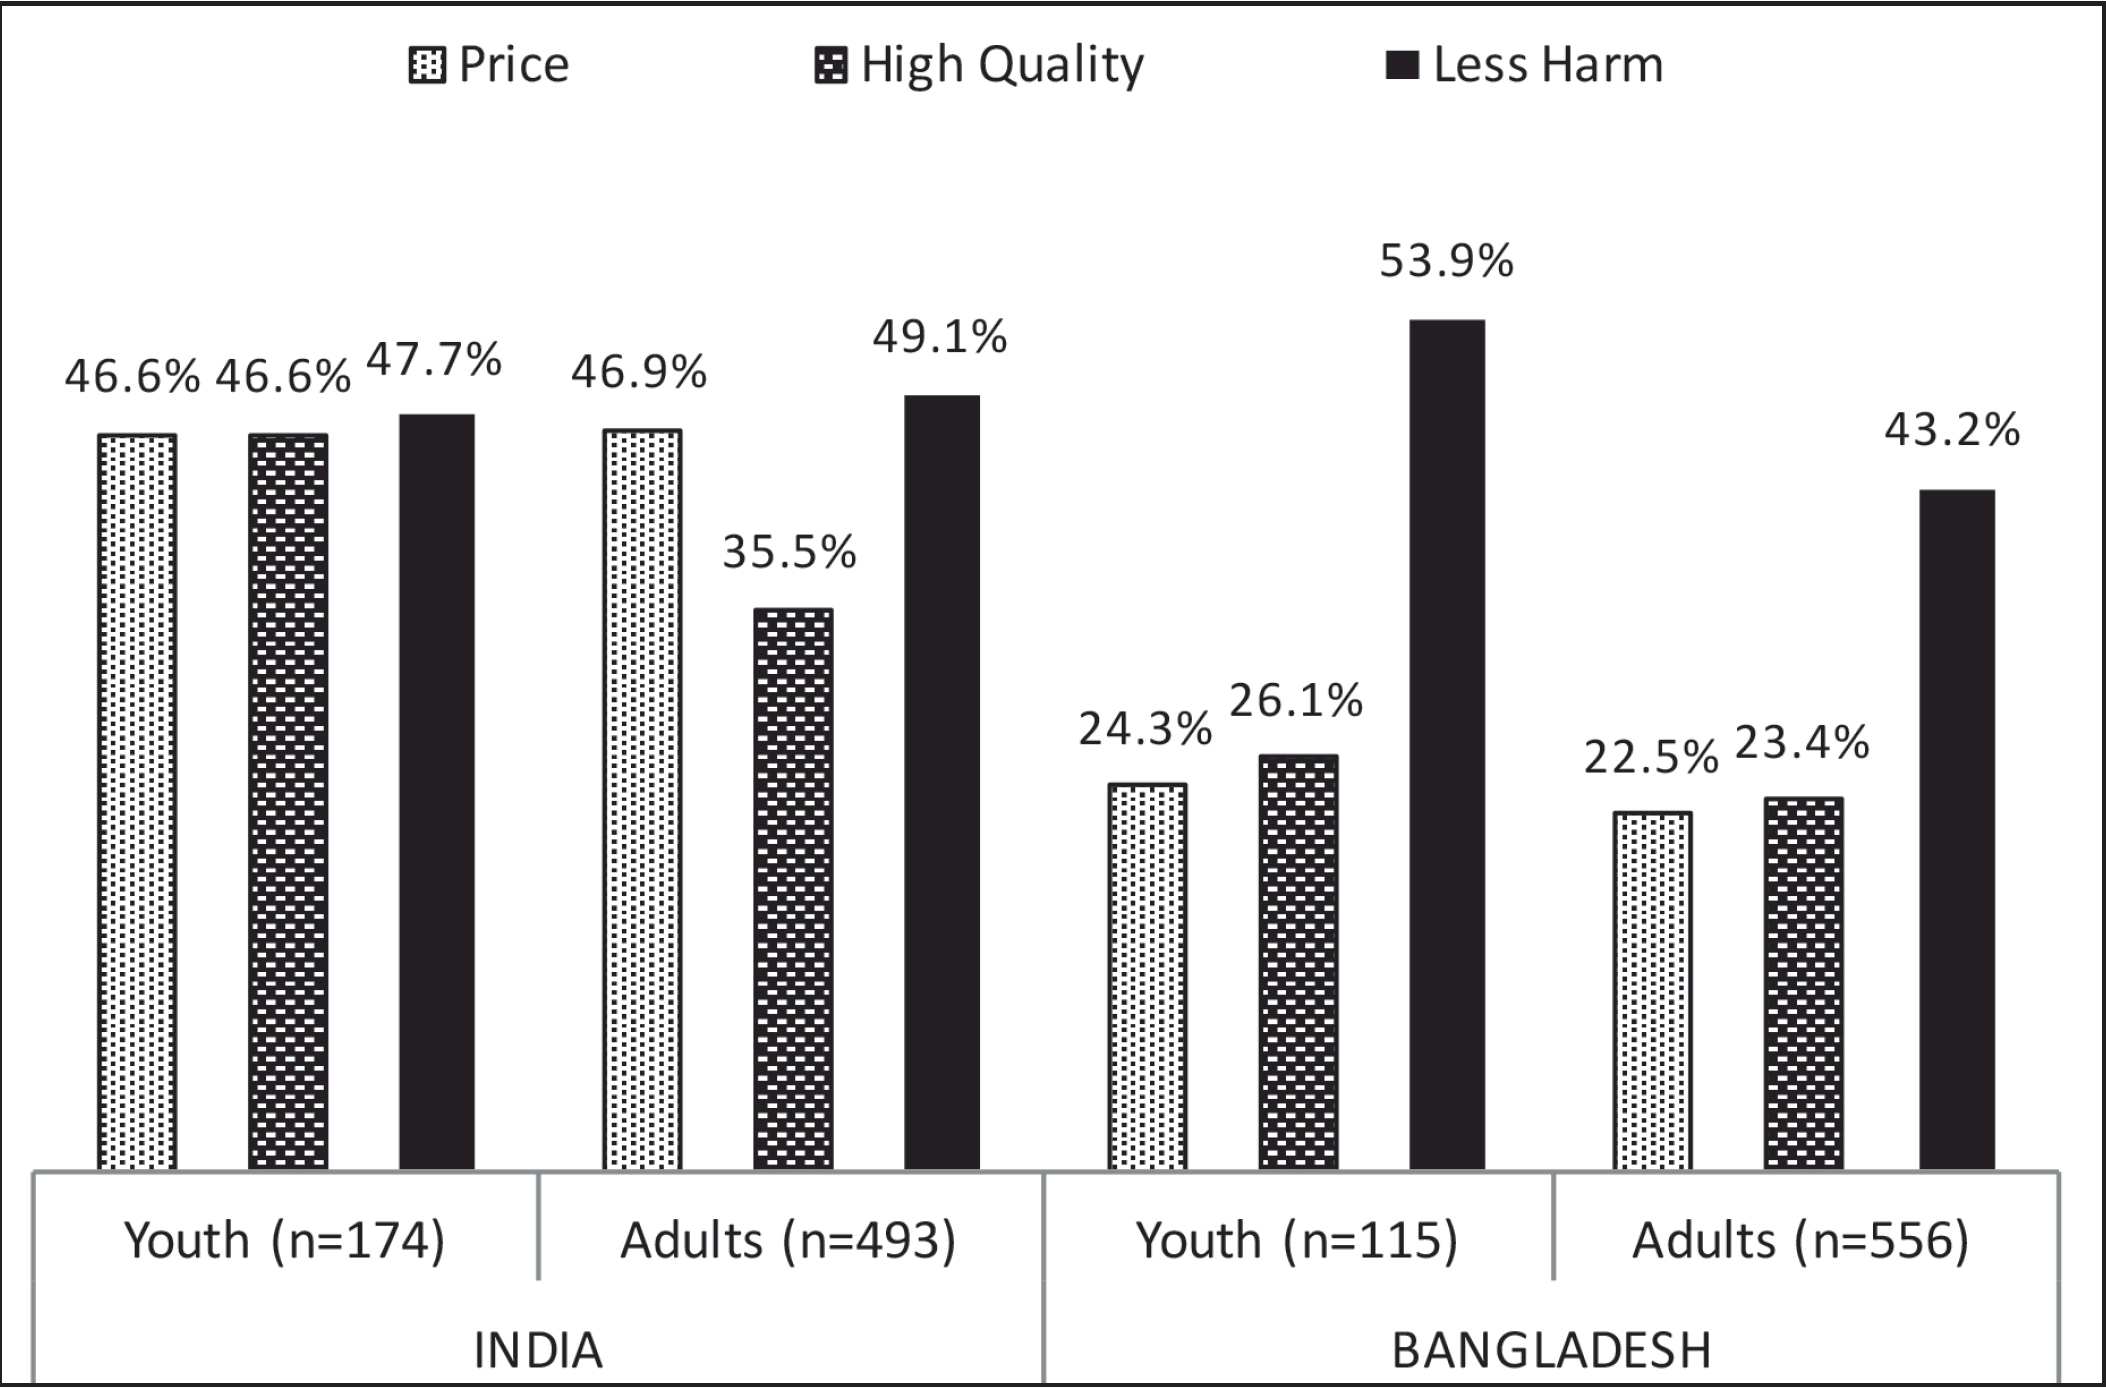 Patterns of use and perceptions of harm of smokeless tobacco